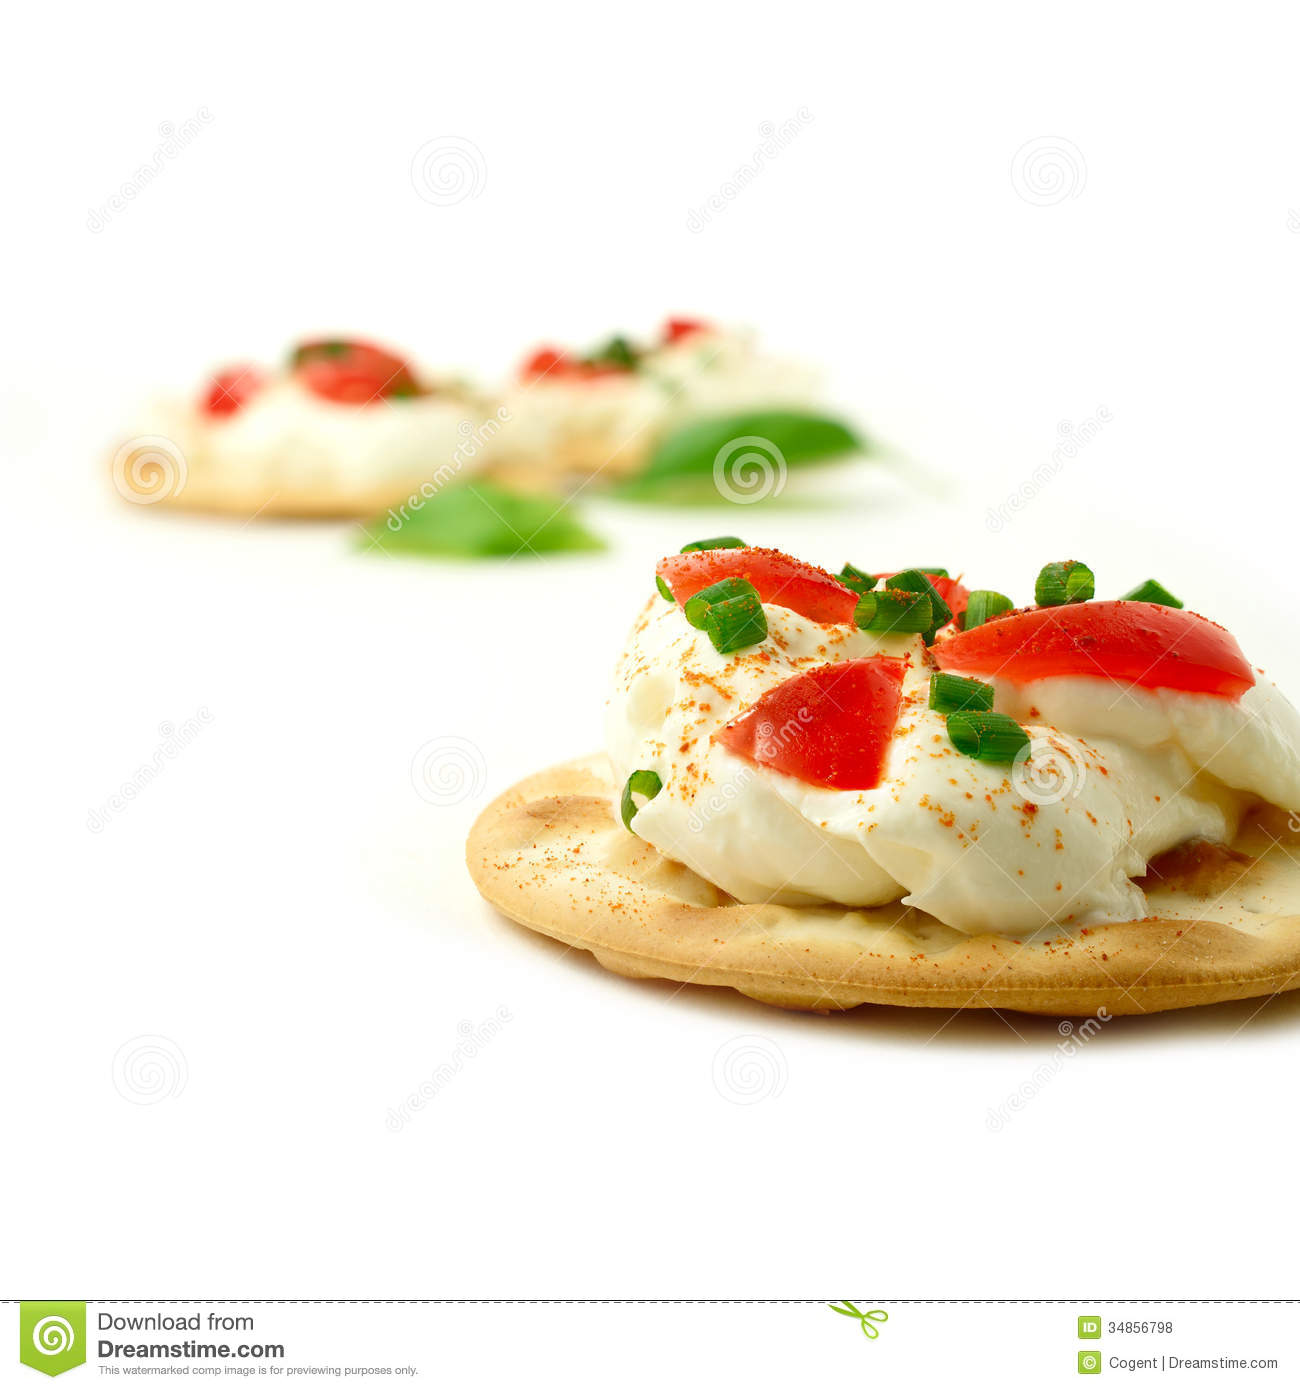 Cream cheese canape royalty free stock photos image for Cream cheese canape